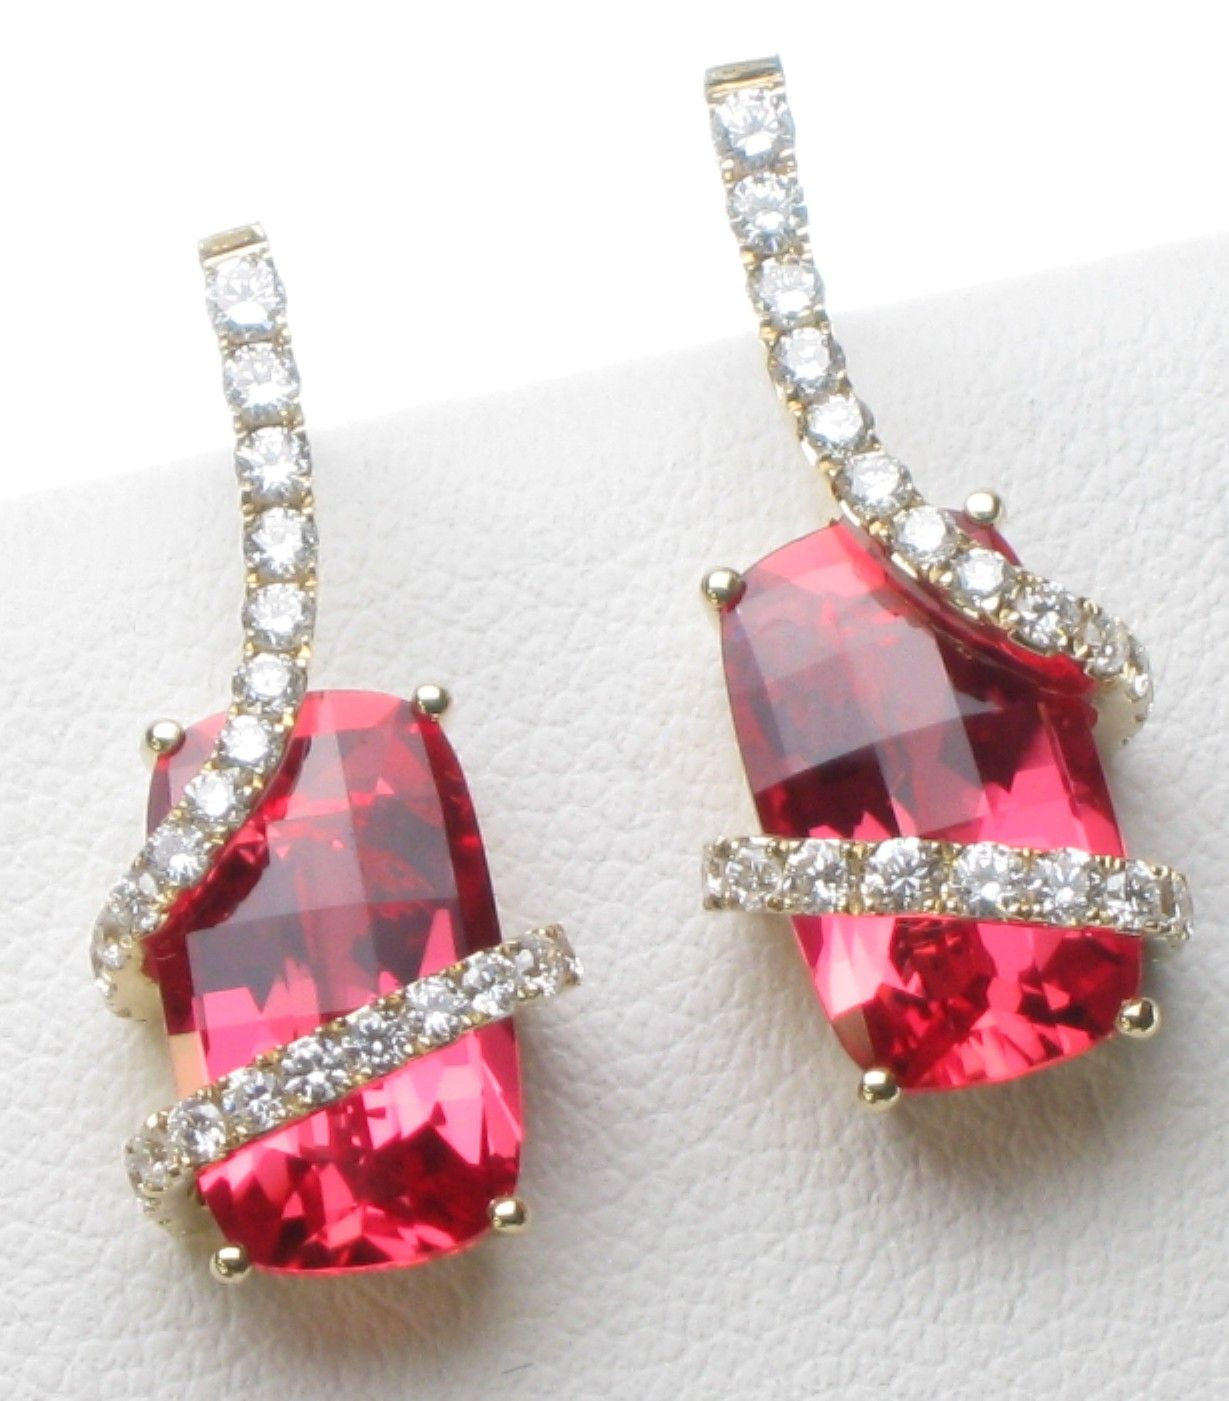 earrings of sotheby usd registers and sale hong jadeite fine october diamond sapphire total sothebys s a million jewels ring autumn lot kong padparadscha magnificent